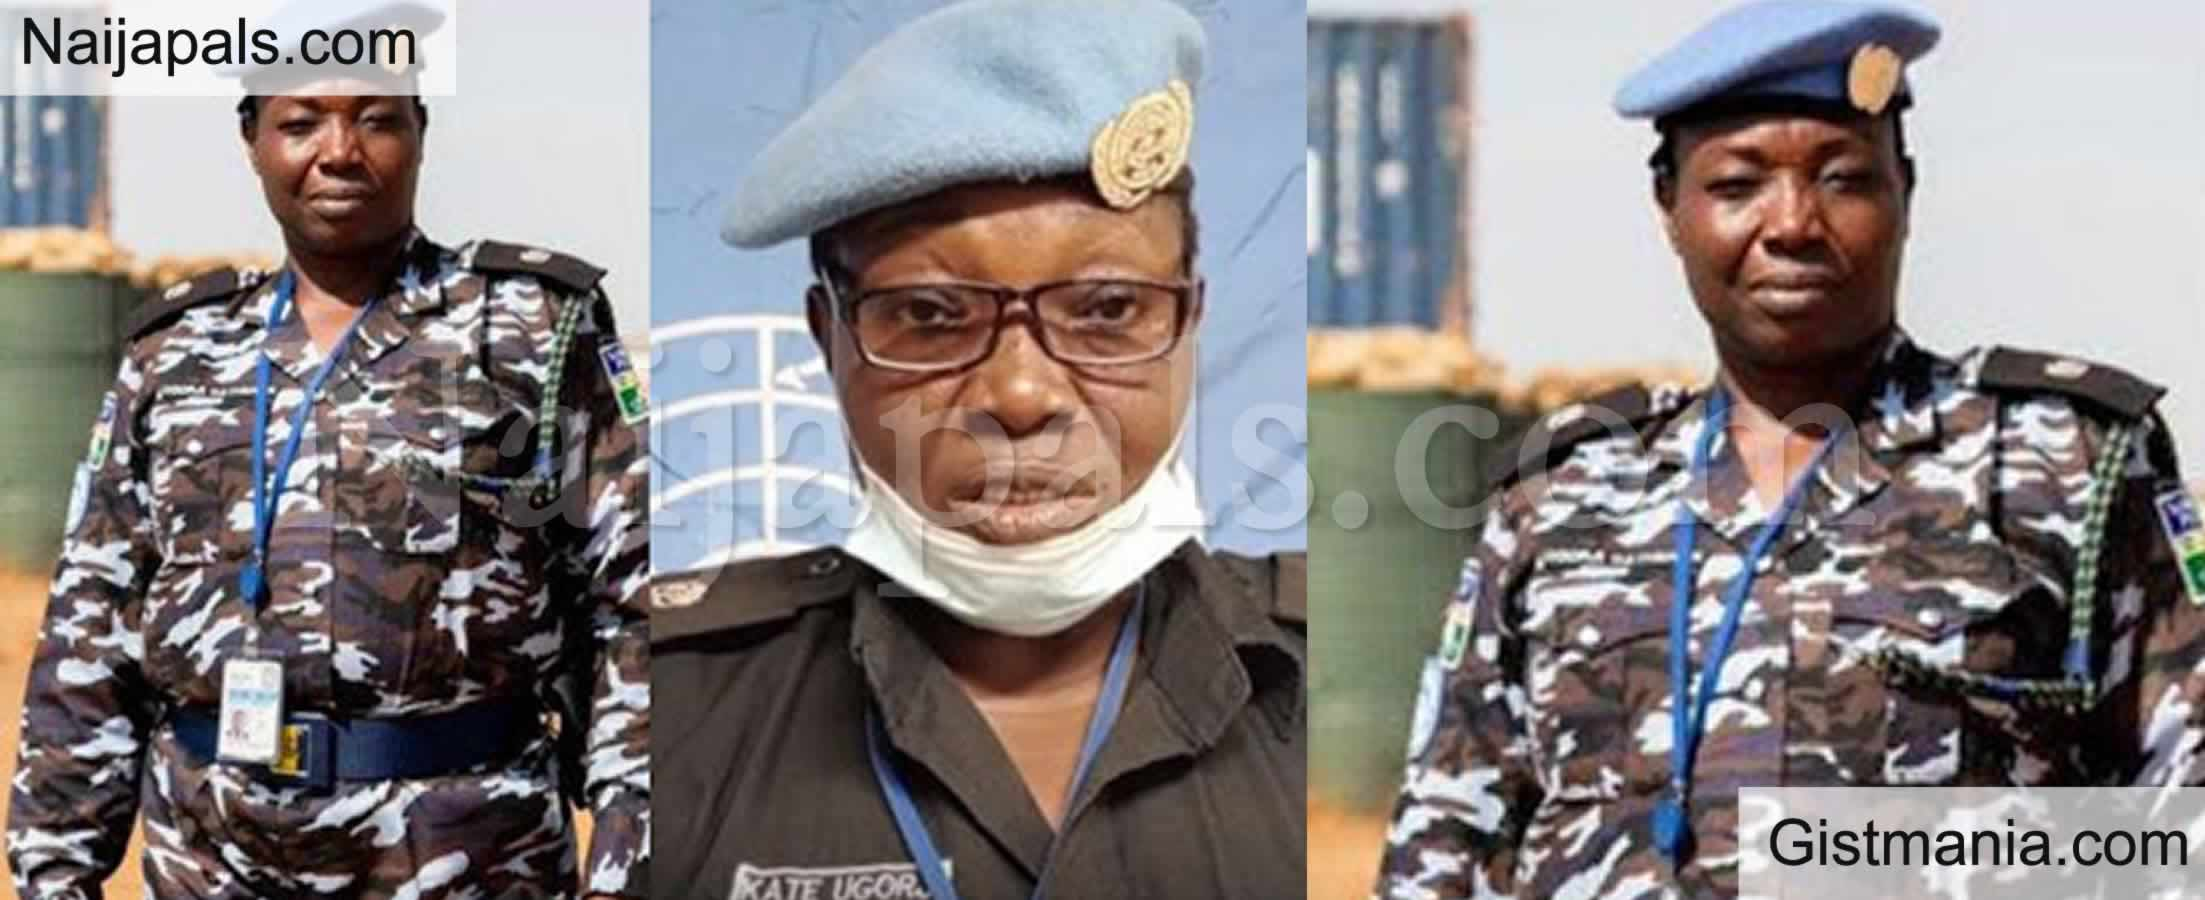 <img alt='.' class='lazyload' data-src='https://img.gistmania.com/emot/thumbs_up.gif' /> <b>Nigerian Woman Police Officer, CSP Catherine Ugorji Selected For UN Police Of The Year Award</b>